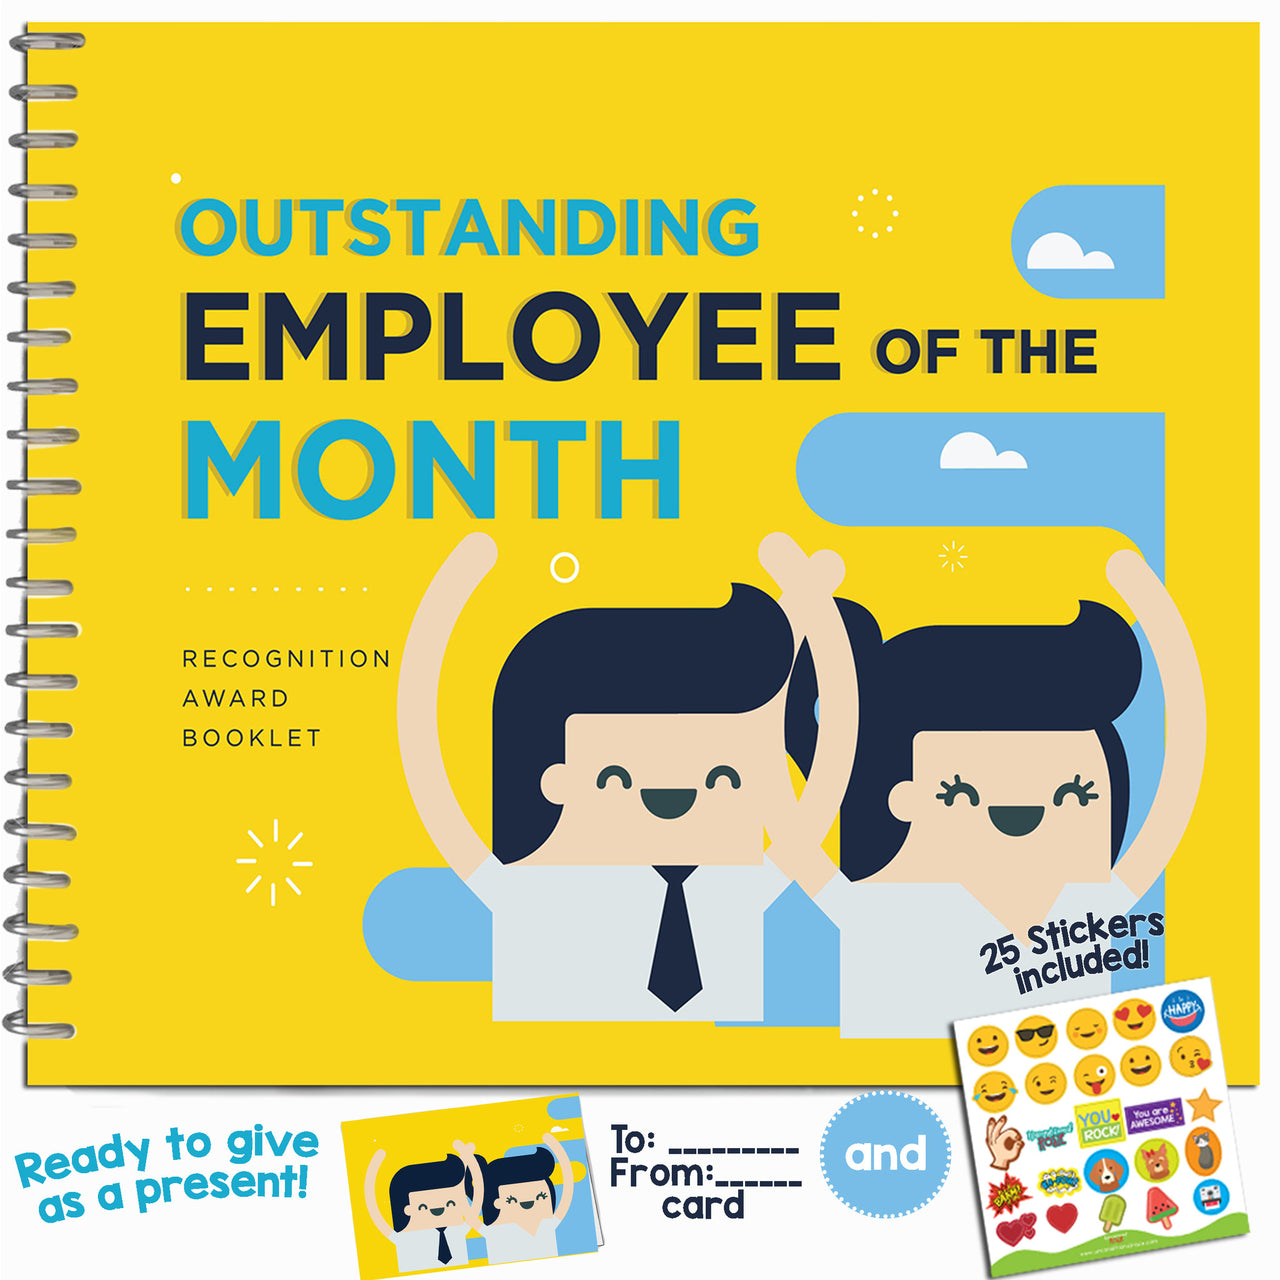 Outstanding Employee of the Month Recognition Award Booklet